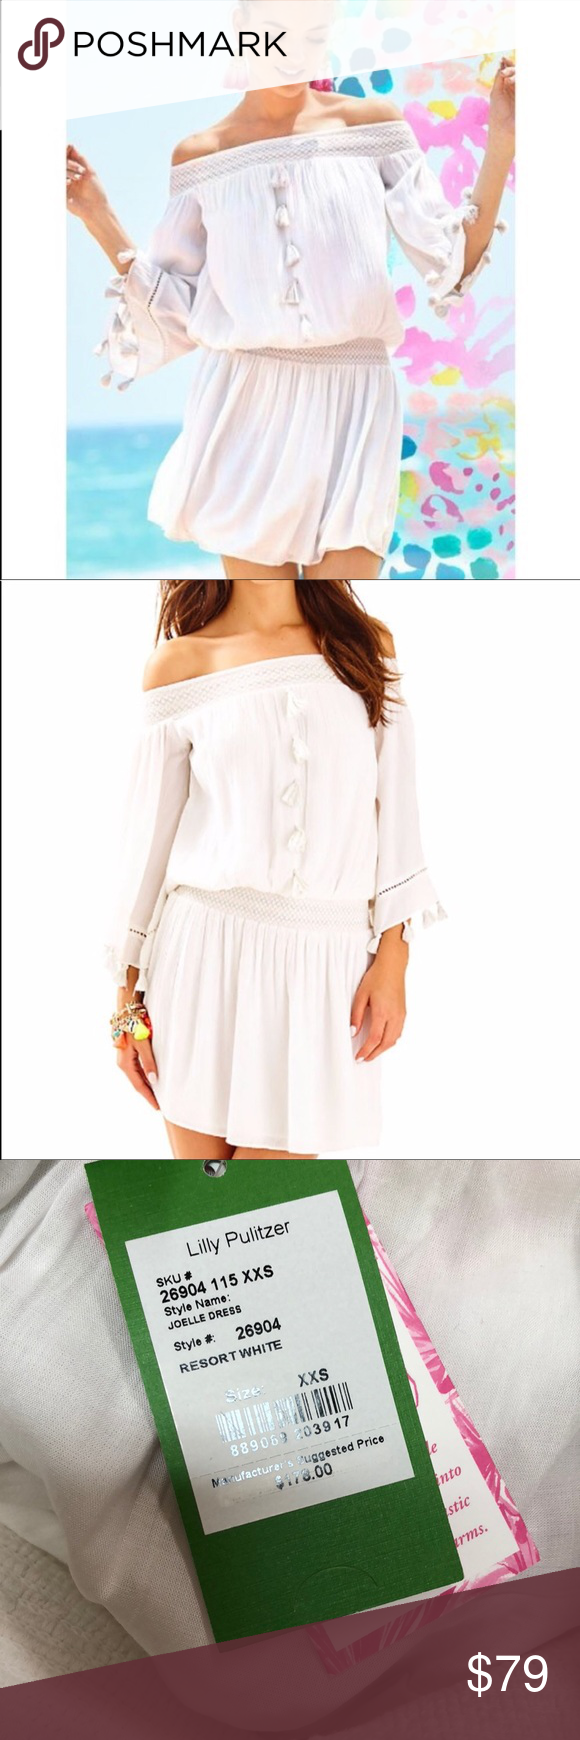 7d78e2bb7f8e65 NWT Lilly Pulitzer Joelle Resort White Dress NWT! Tag says XXS but This  would fit xxs to xs to small Adorable off shoulder Dress with fun Tassel  details!